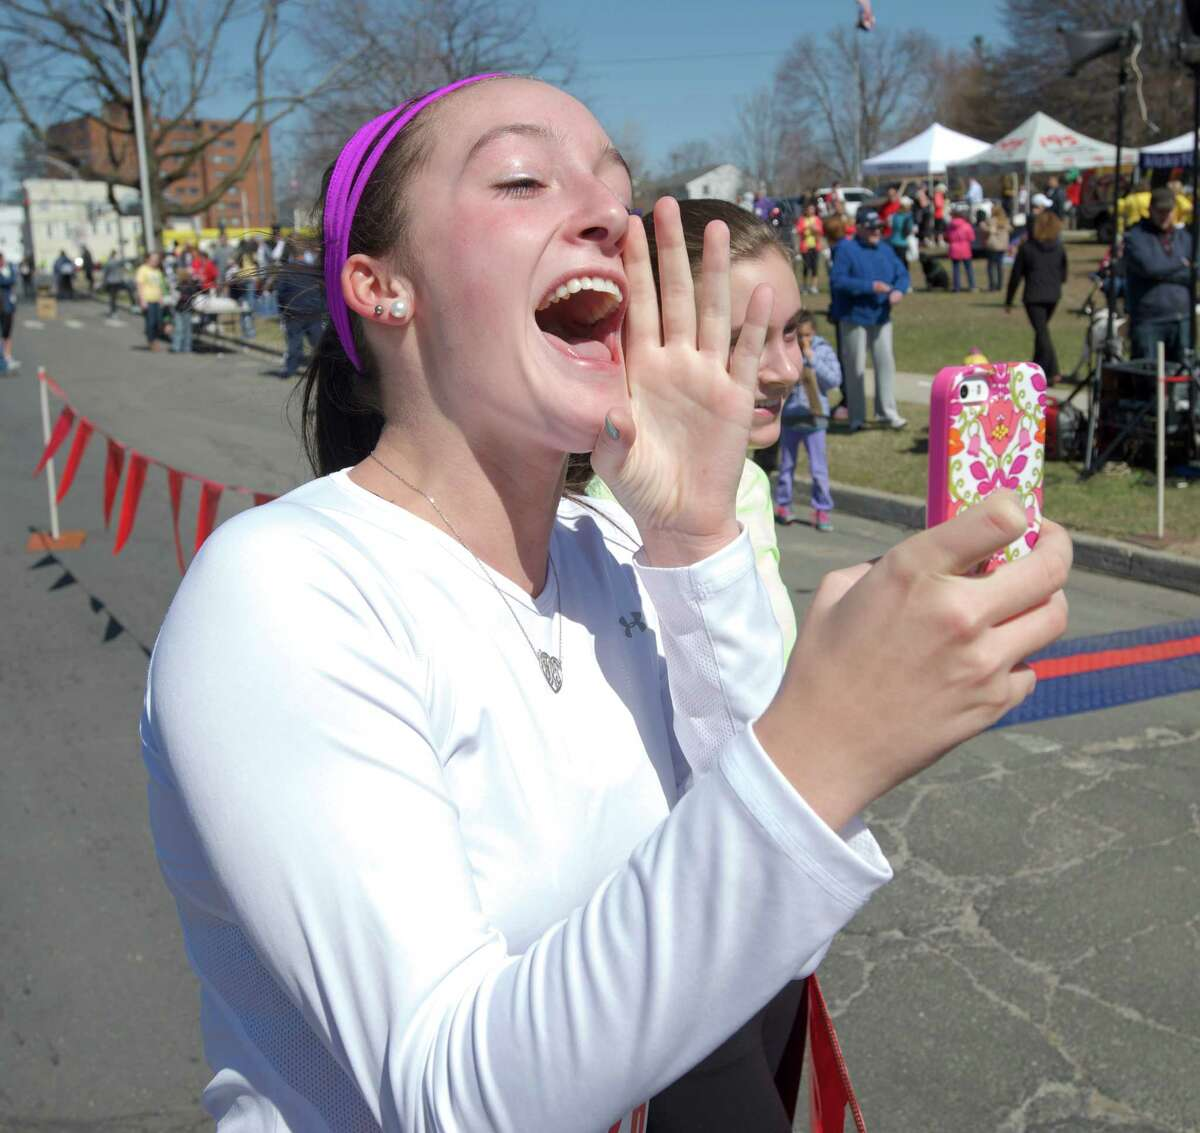 Jessica Roth, age 18, of Danbury, waits at the finish line with her sister Jordan Roth, age 15, for their parents Jennifer and Jeffery Roth to finish the Stratton Faxon Greater Danbury 5K, all four ran in the race, in Danbury Conn, on Sunday, April 6, 2014.